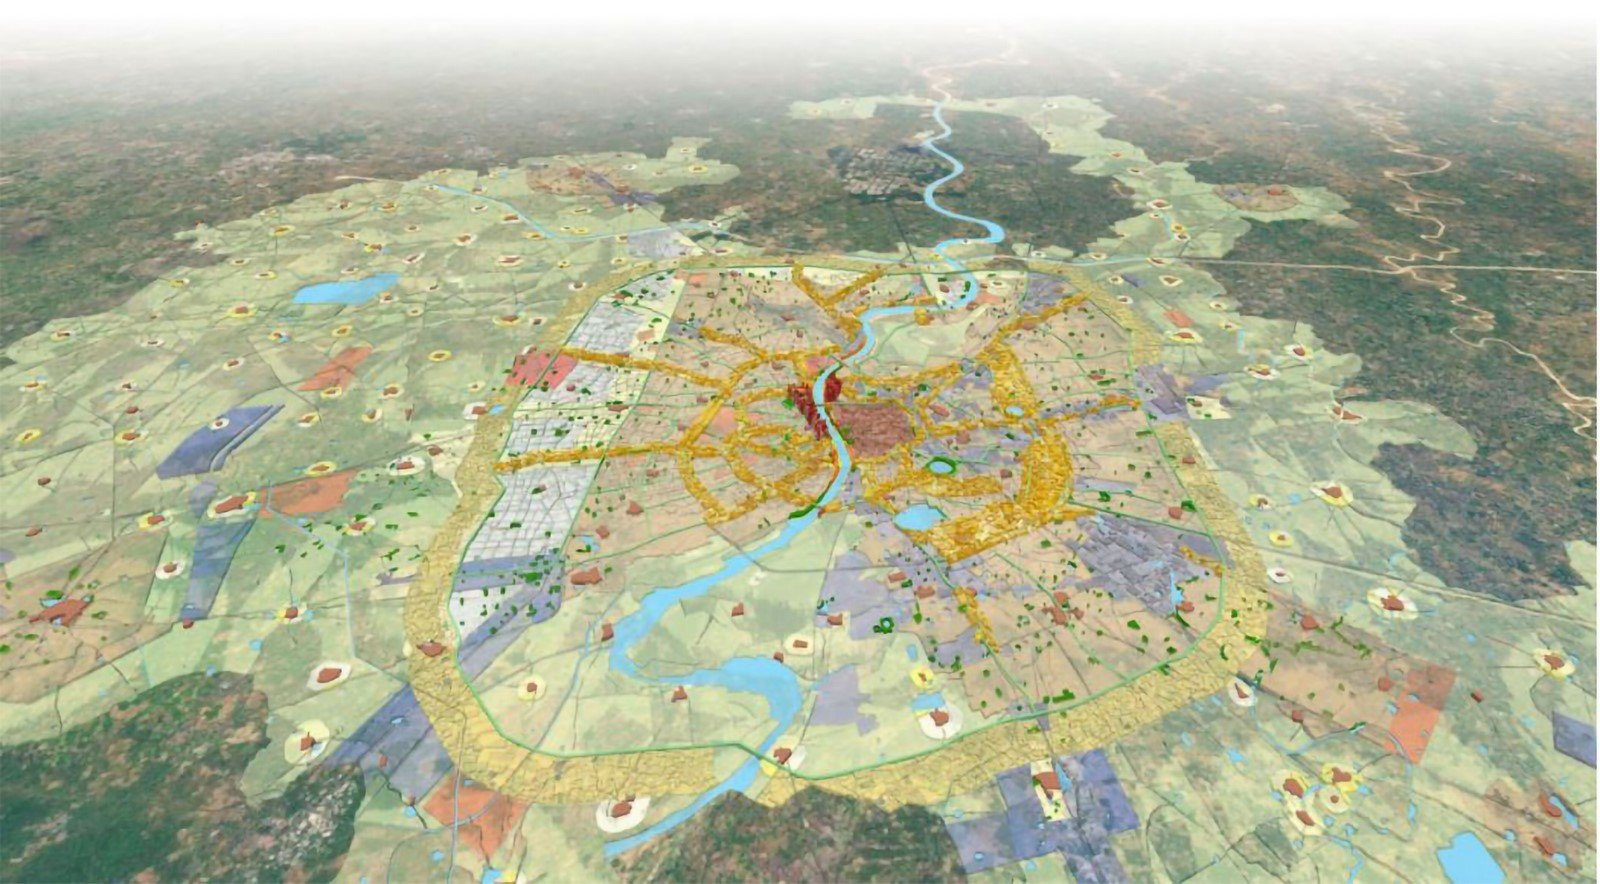 A2401-8-Indian-urban-planners-working-around-the-world-IMAGE_1-4.jpg